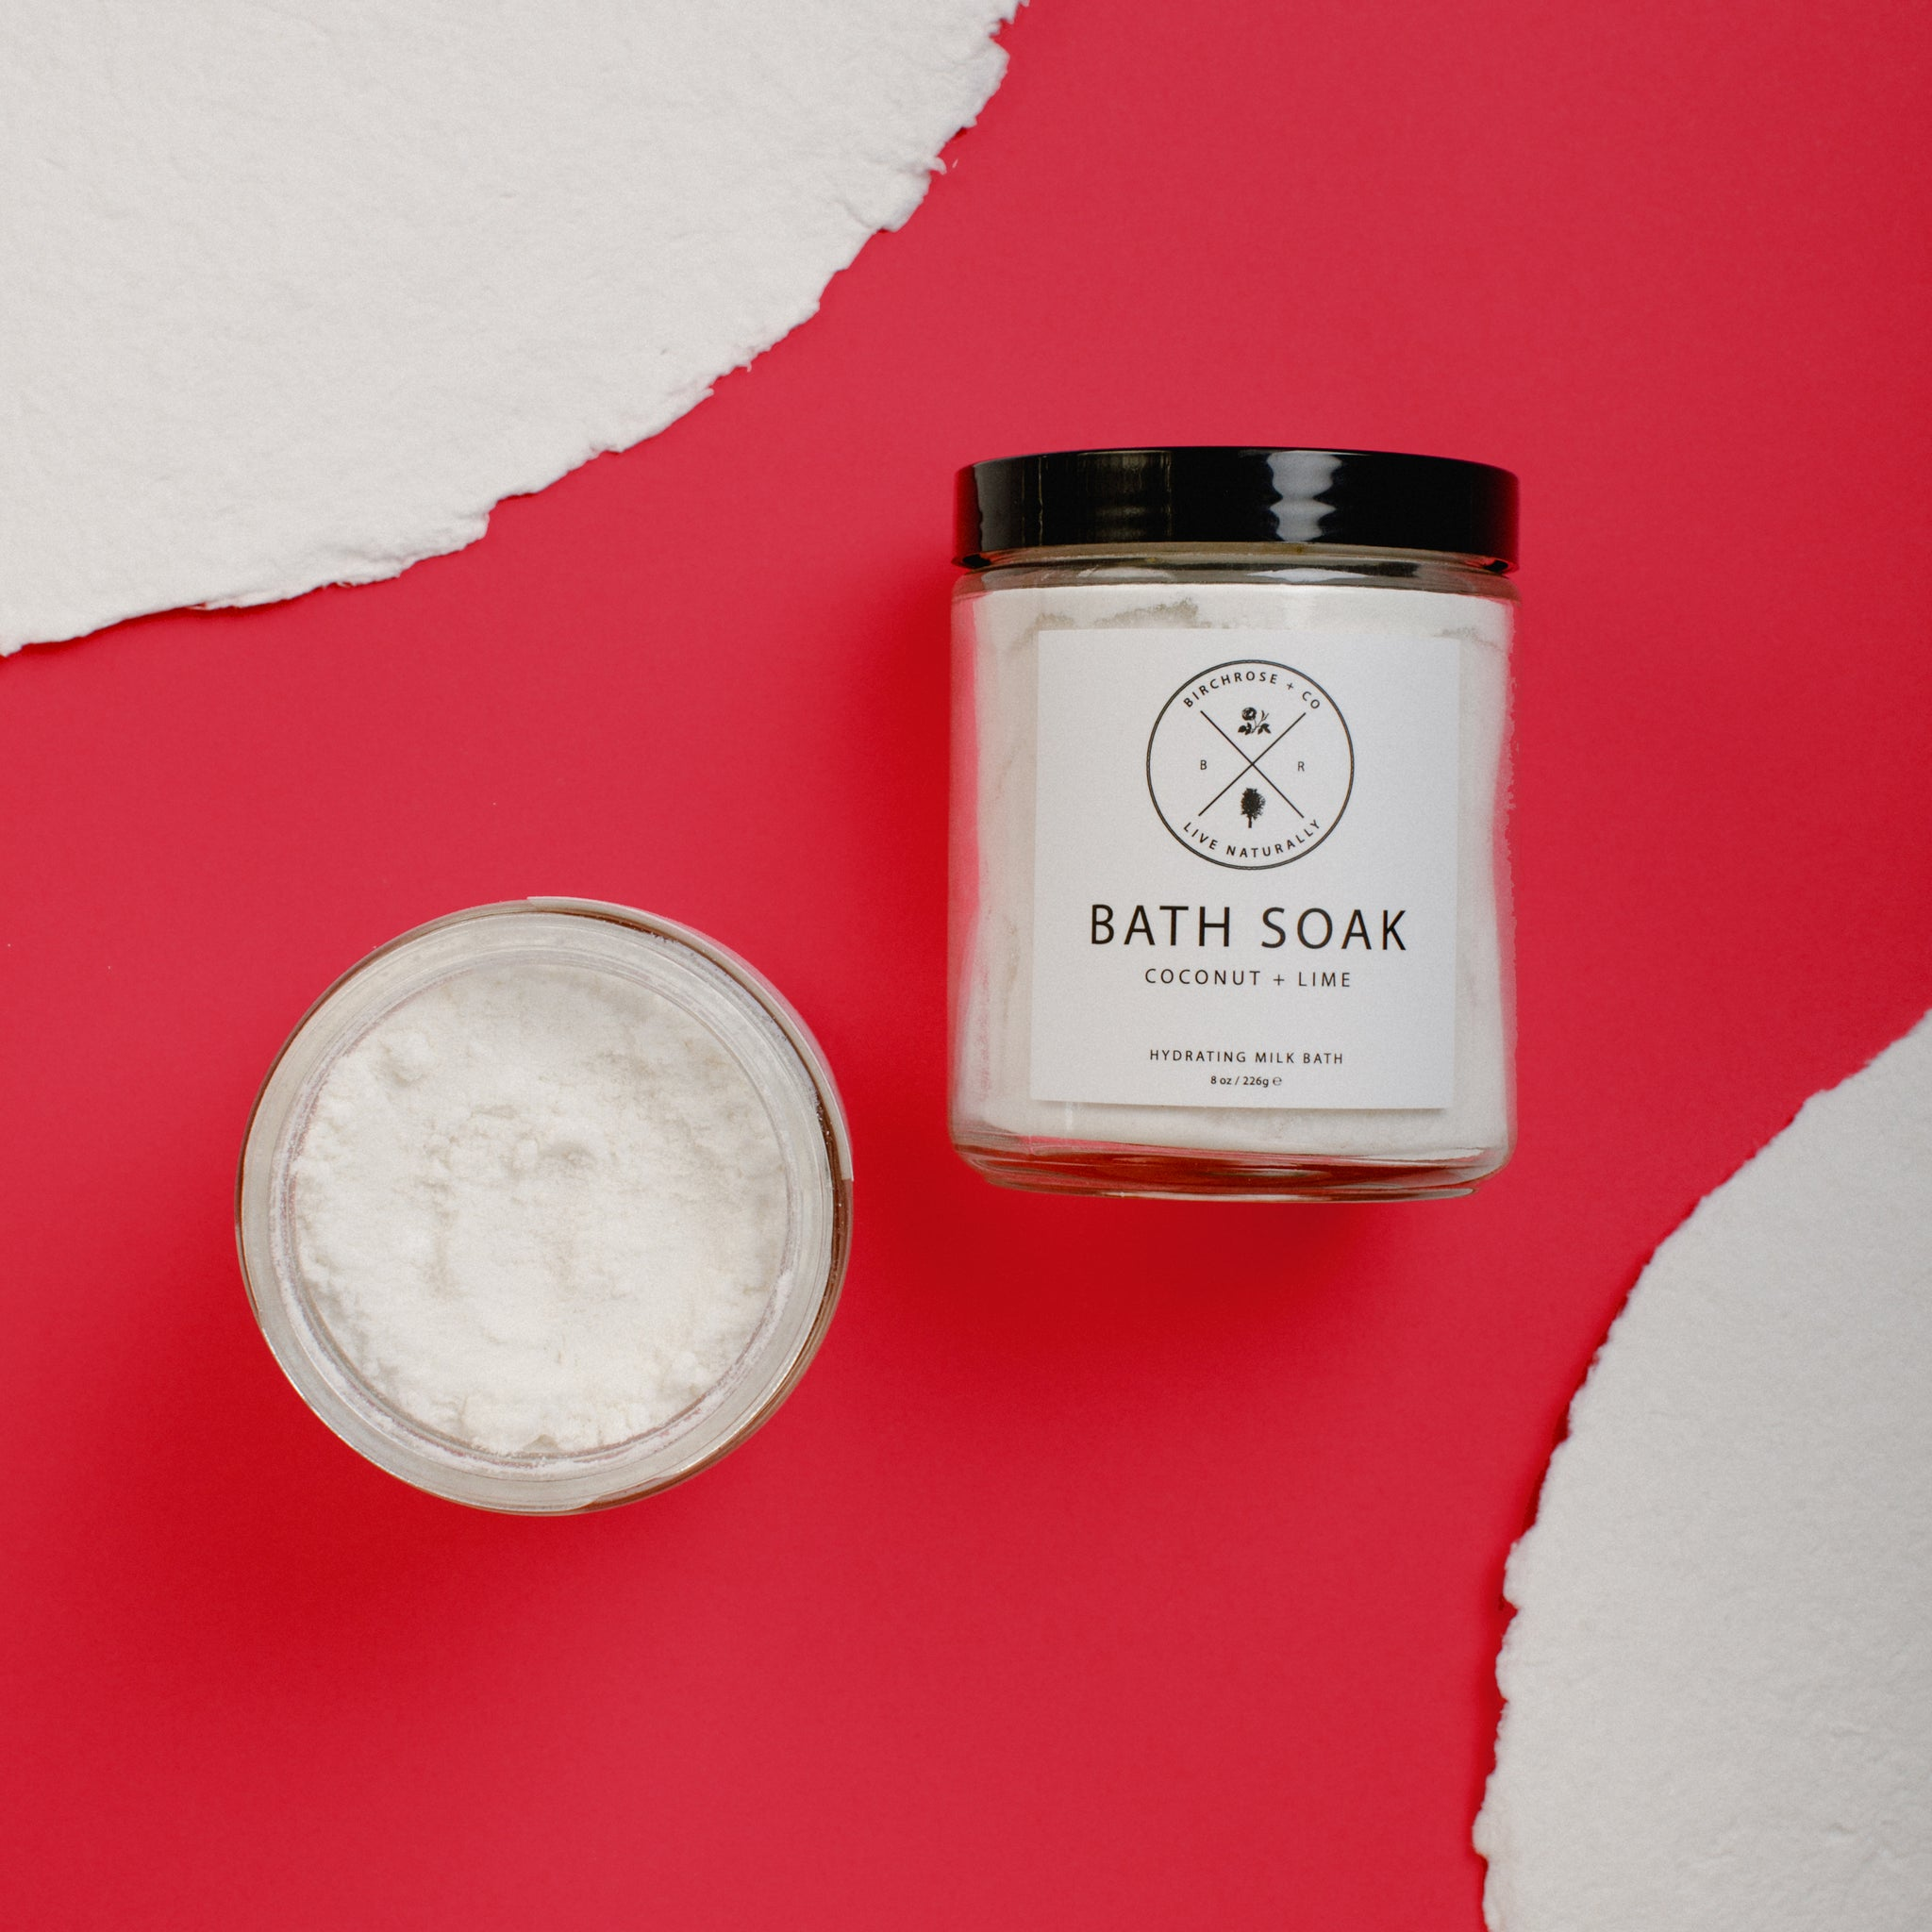 Bath Soak - Coconut + Lime